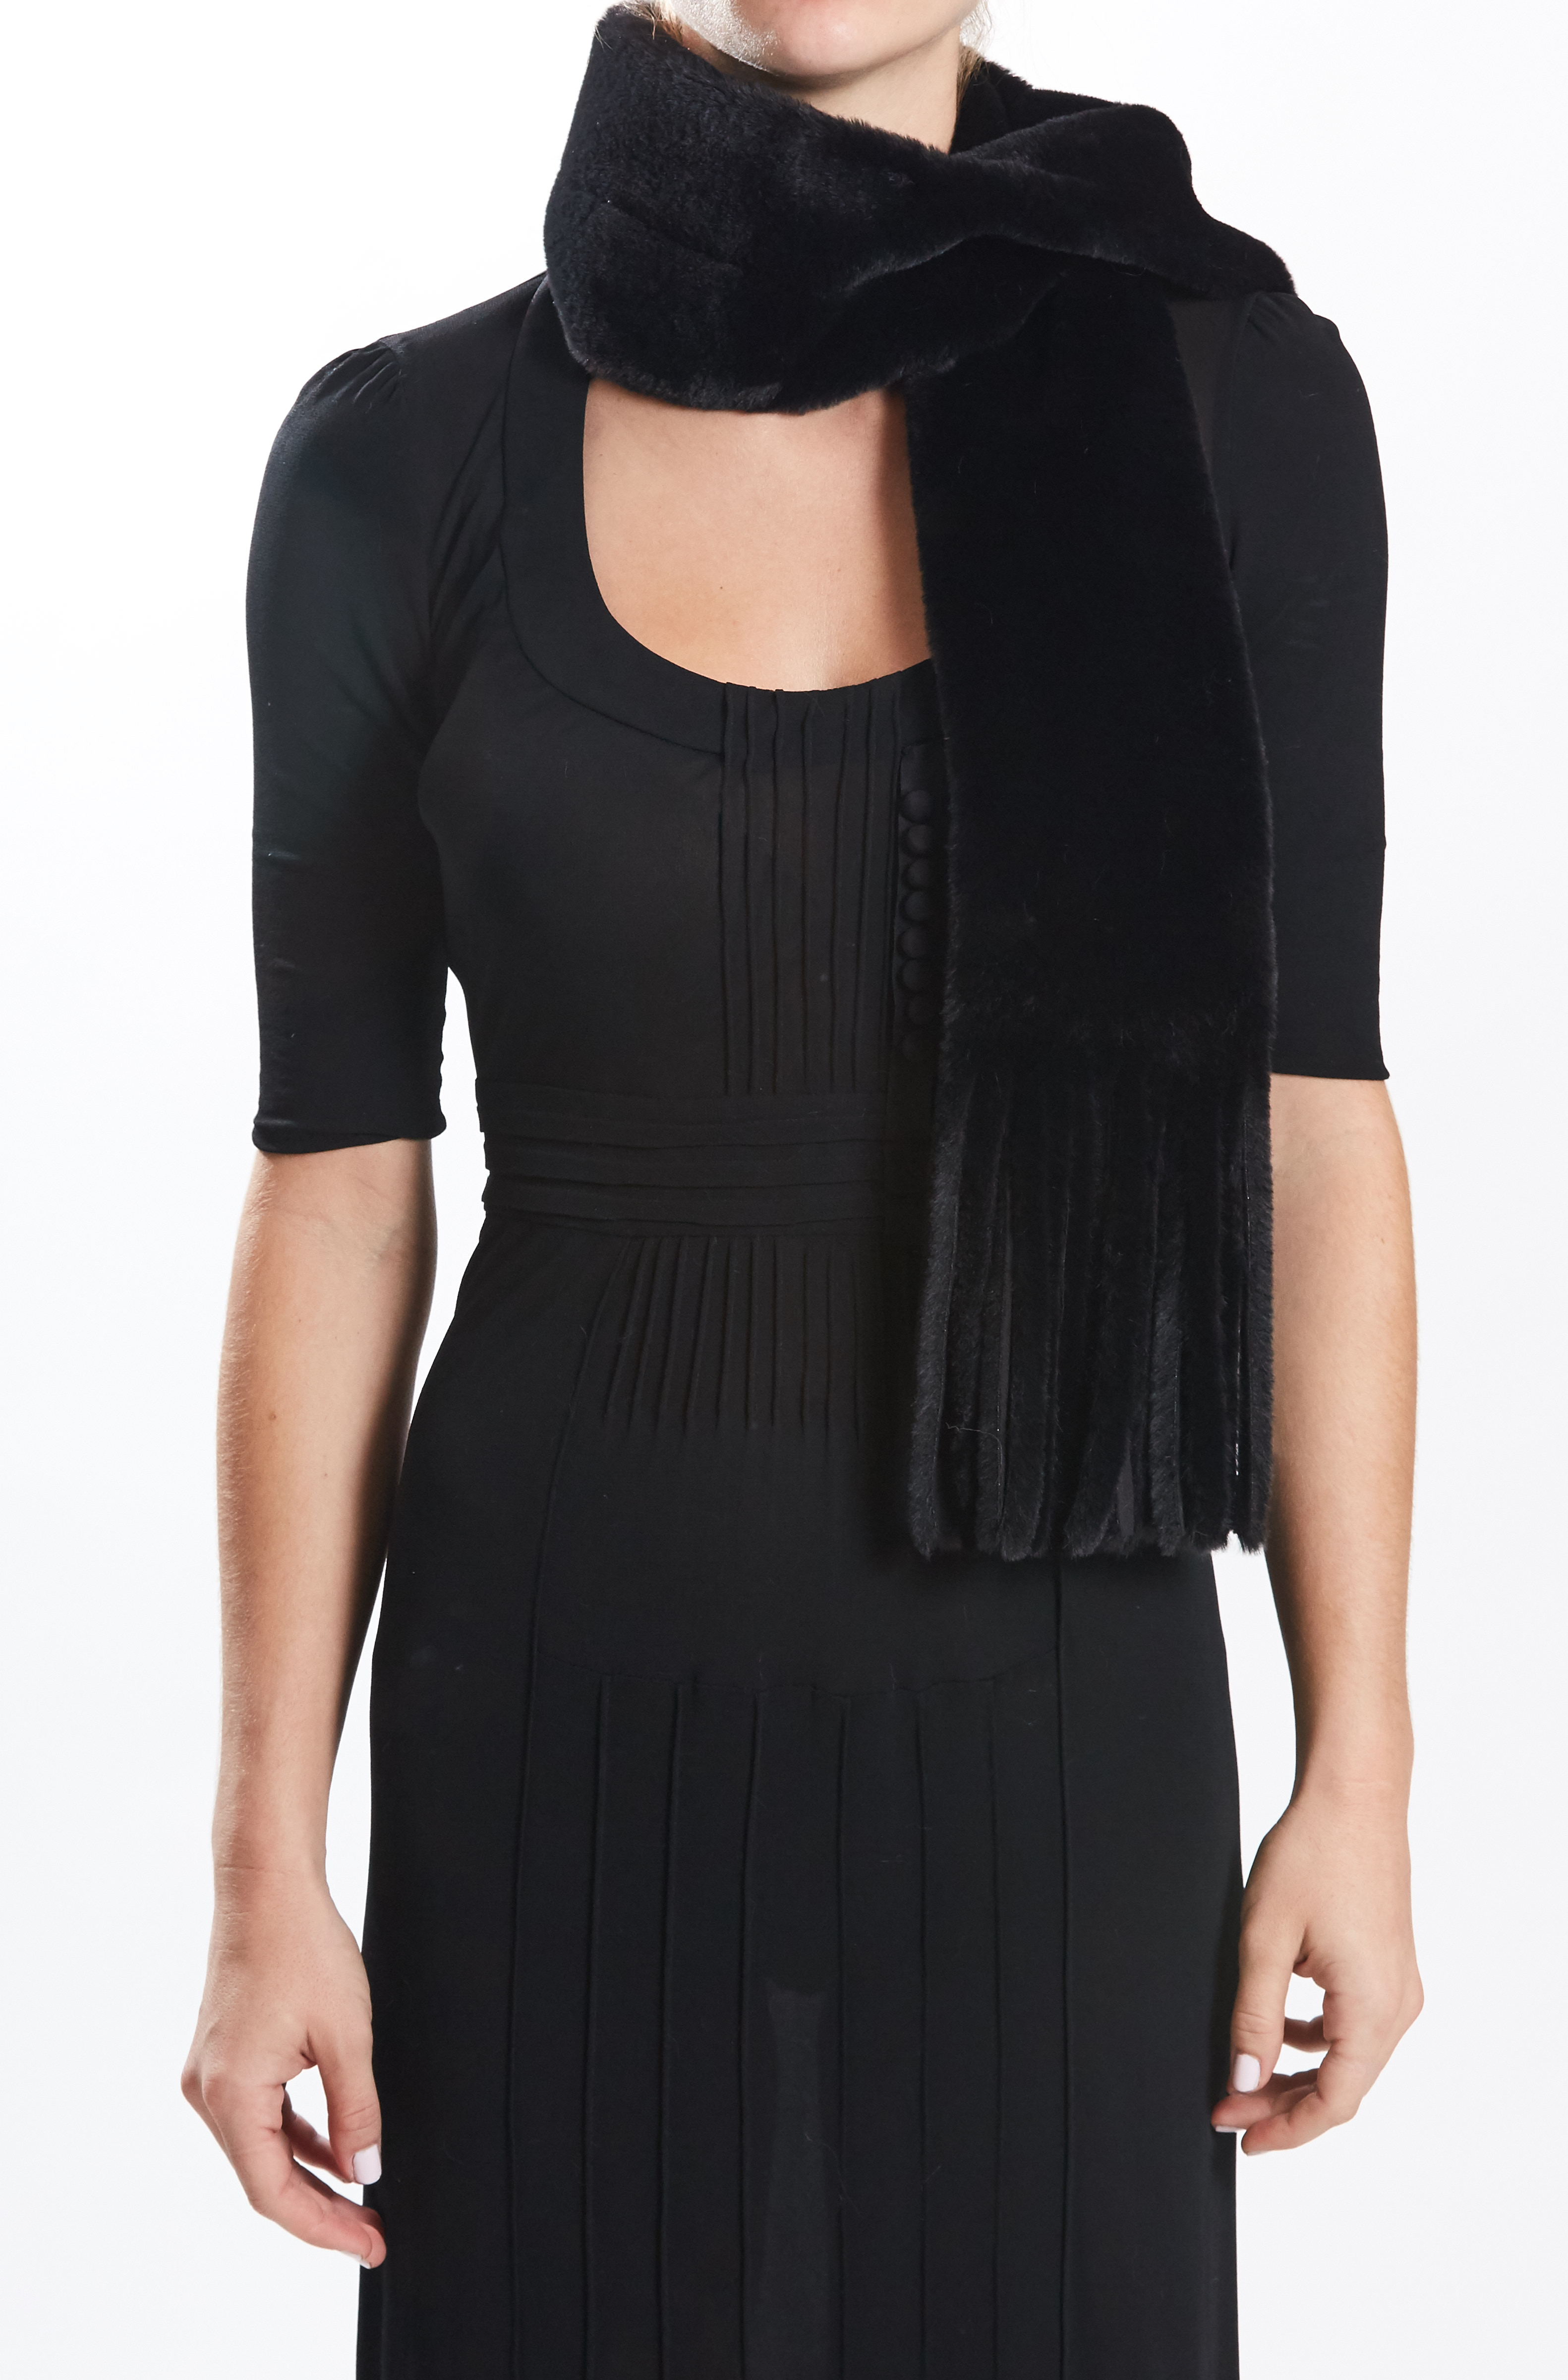 Fringe Scarf - Black/Black by Maison Atia on curated-crowd.com